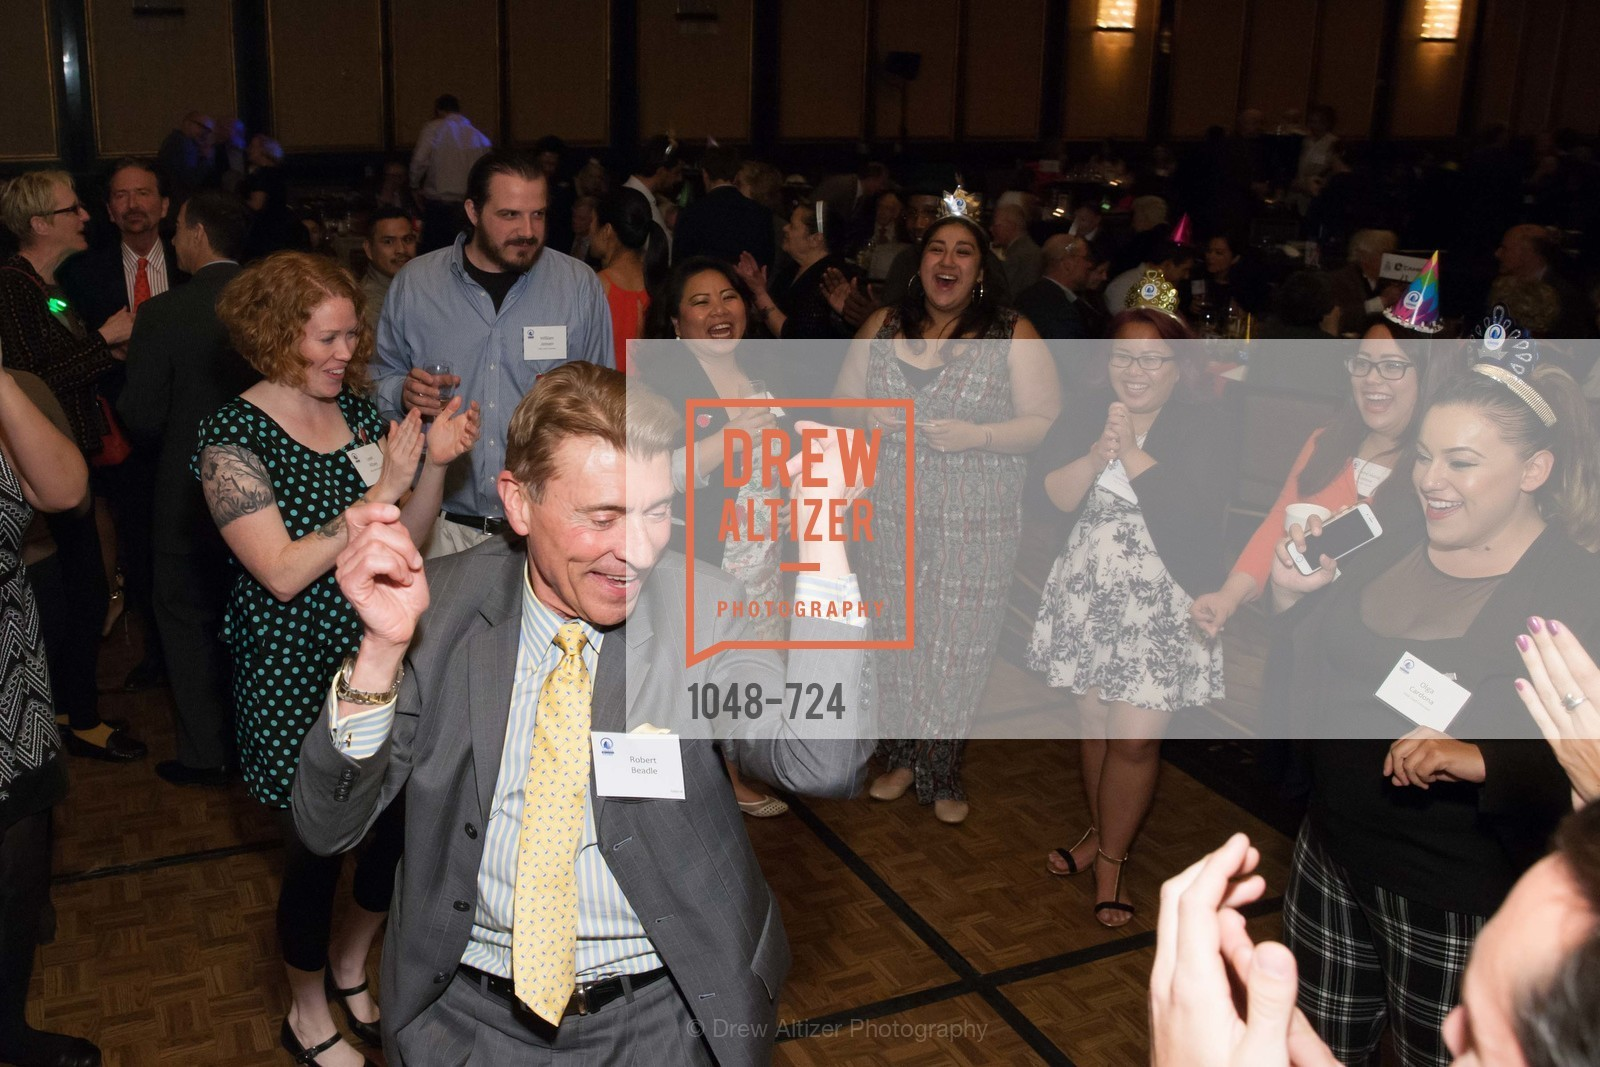 Robert Beadle, TNDC's 34th Annual Birthday Dinner, US, May 12th, 2015,Drew Altizer, Drew Altizer Photography, full-service agency, private events, San Francisco photographer, photographer california